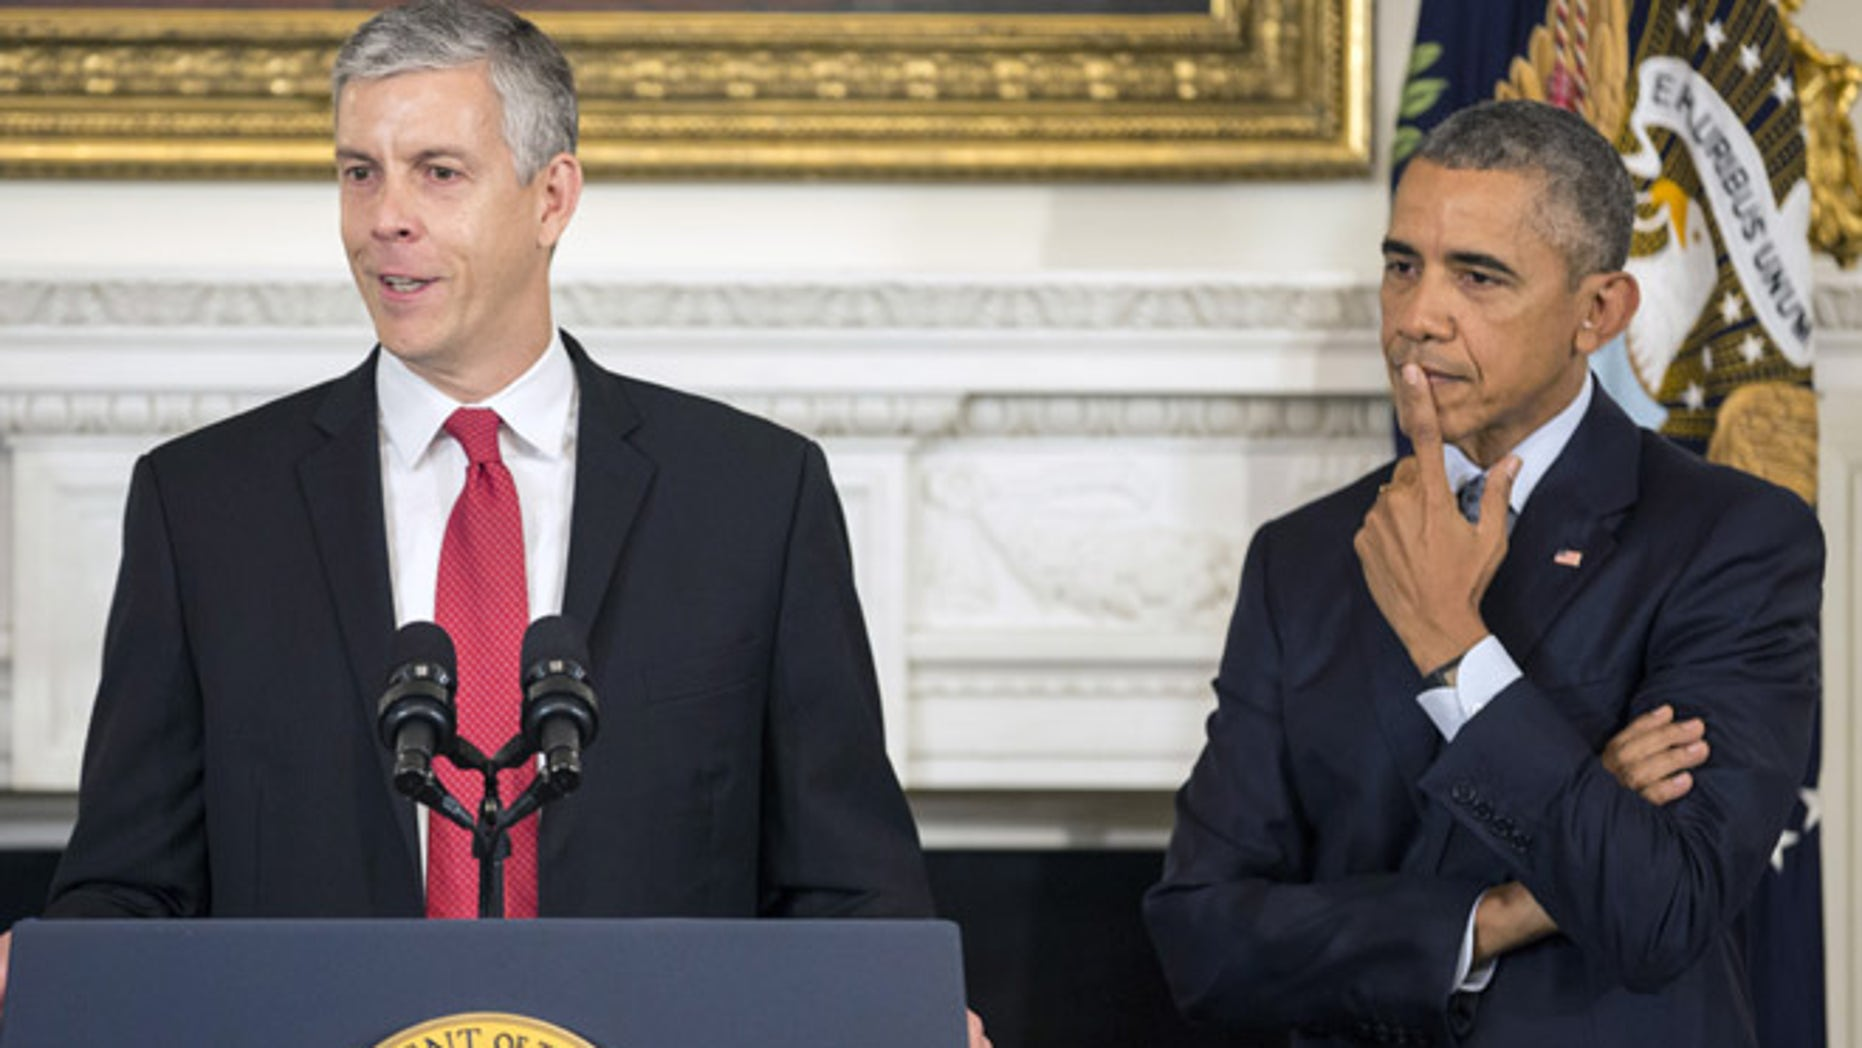 October 2, 2015: U.S. President Barack Obama listens as U.S. Secretary of Education Arne Duncan announces his resignation in the State Dinning Room of the White House in Washington.